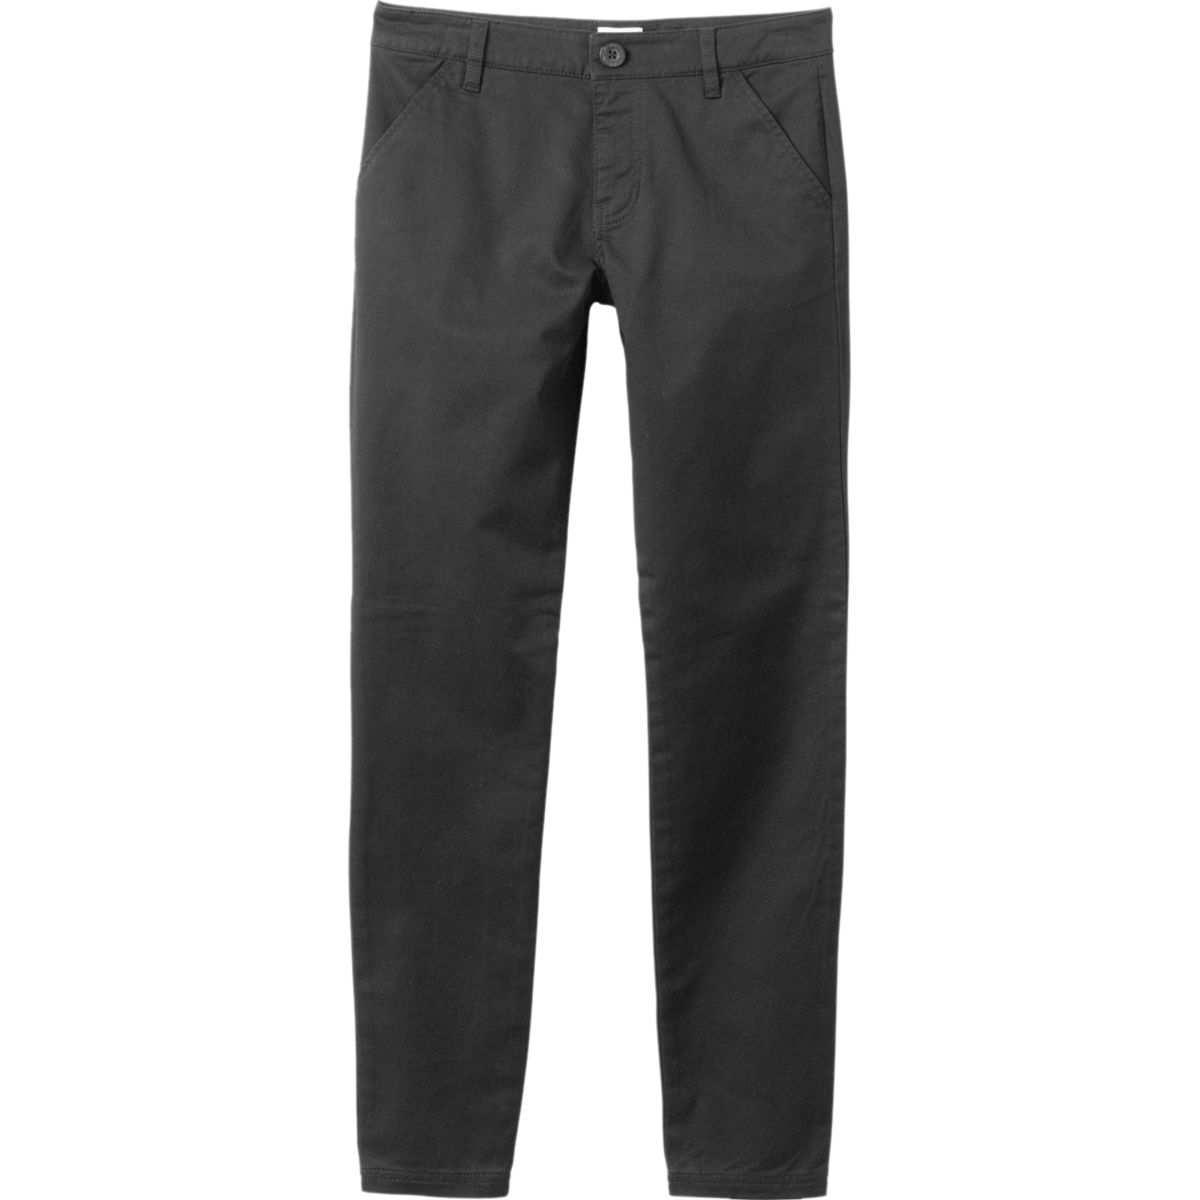 RVCA Uplanded Pant - Women's, currently on sale for sale $49.26